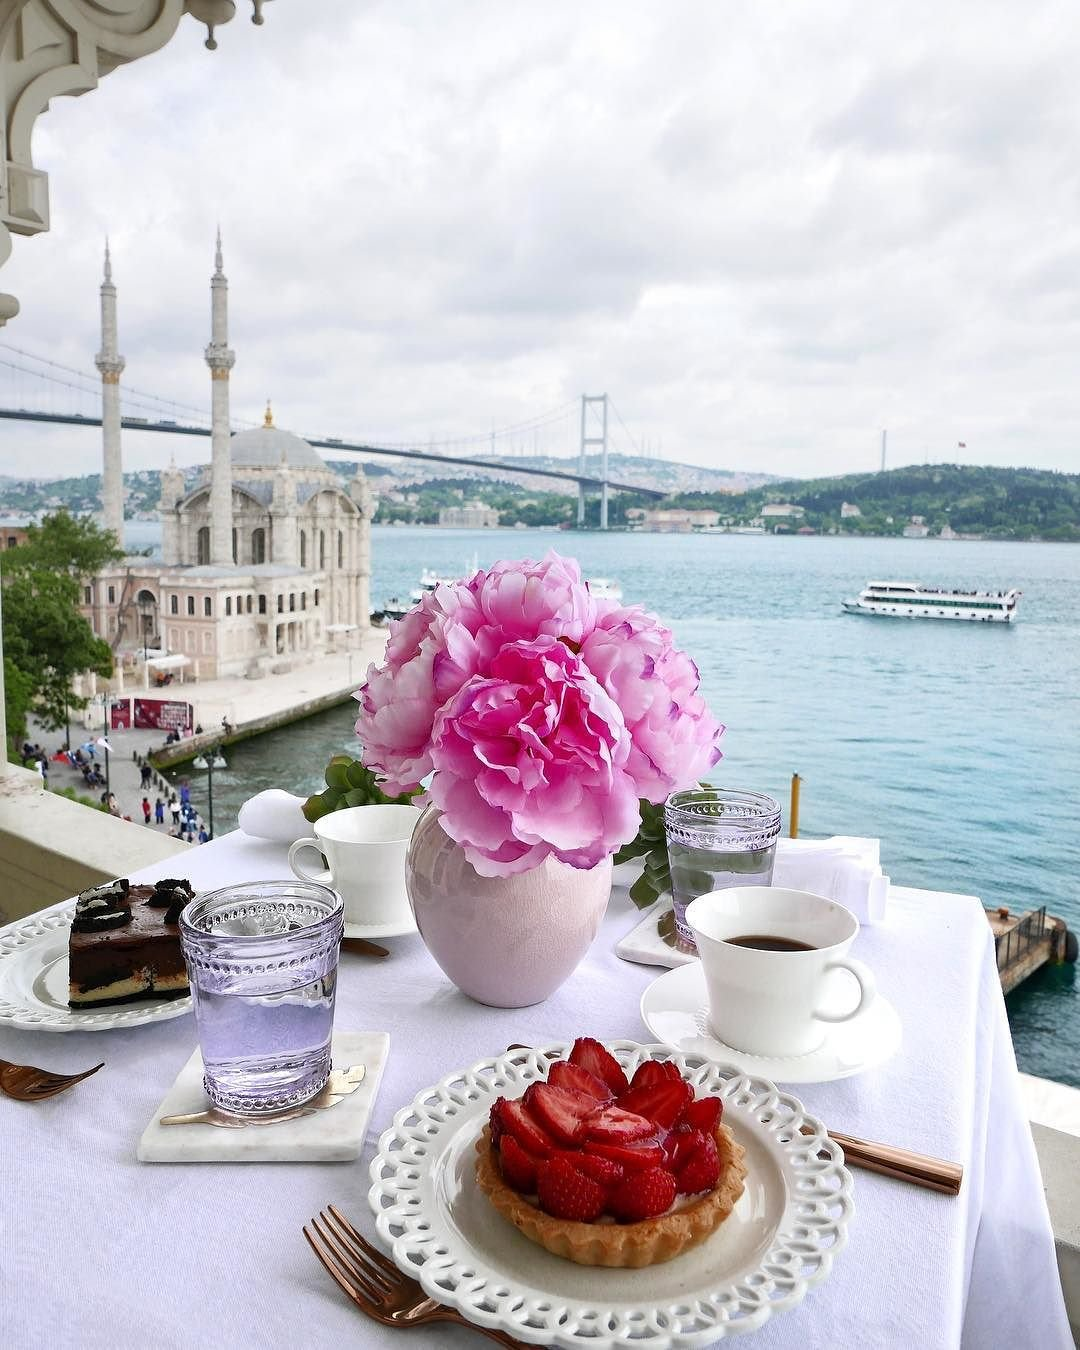 Cafe table overlooking water in Istanbul